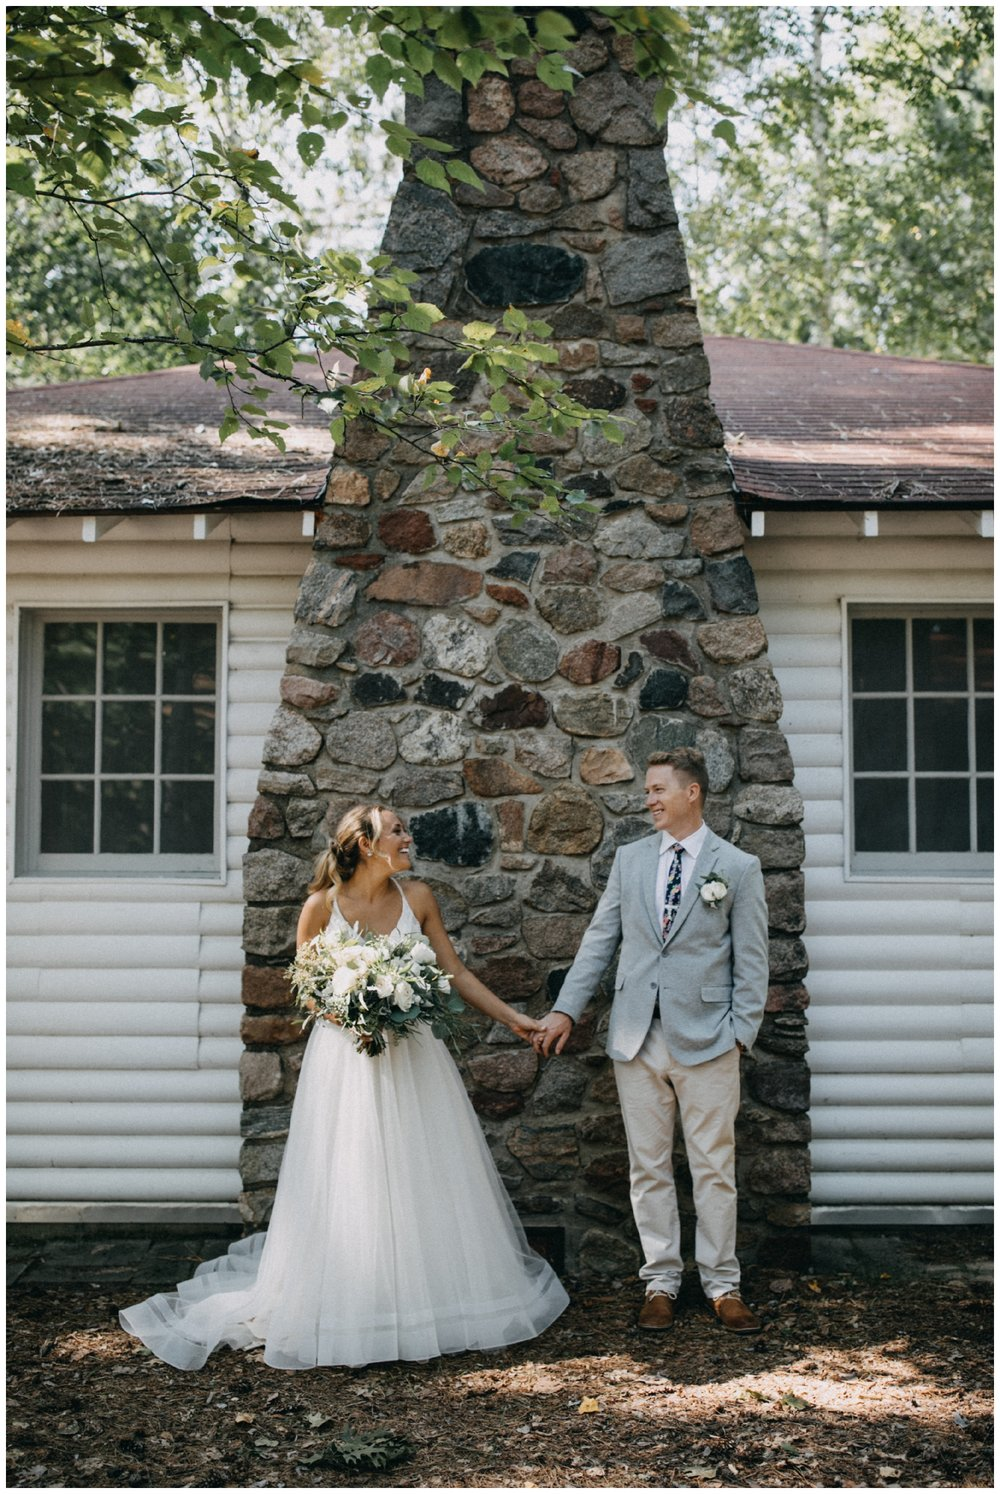 Summer wedding at Camp Foley in Pine River, Minnesota photographed by Britt DeZeeuw